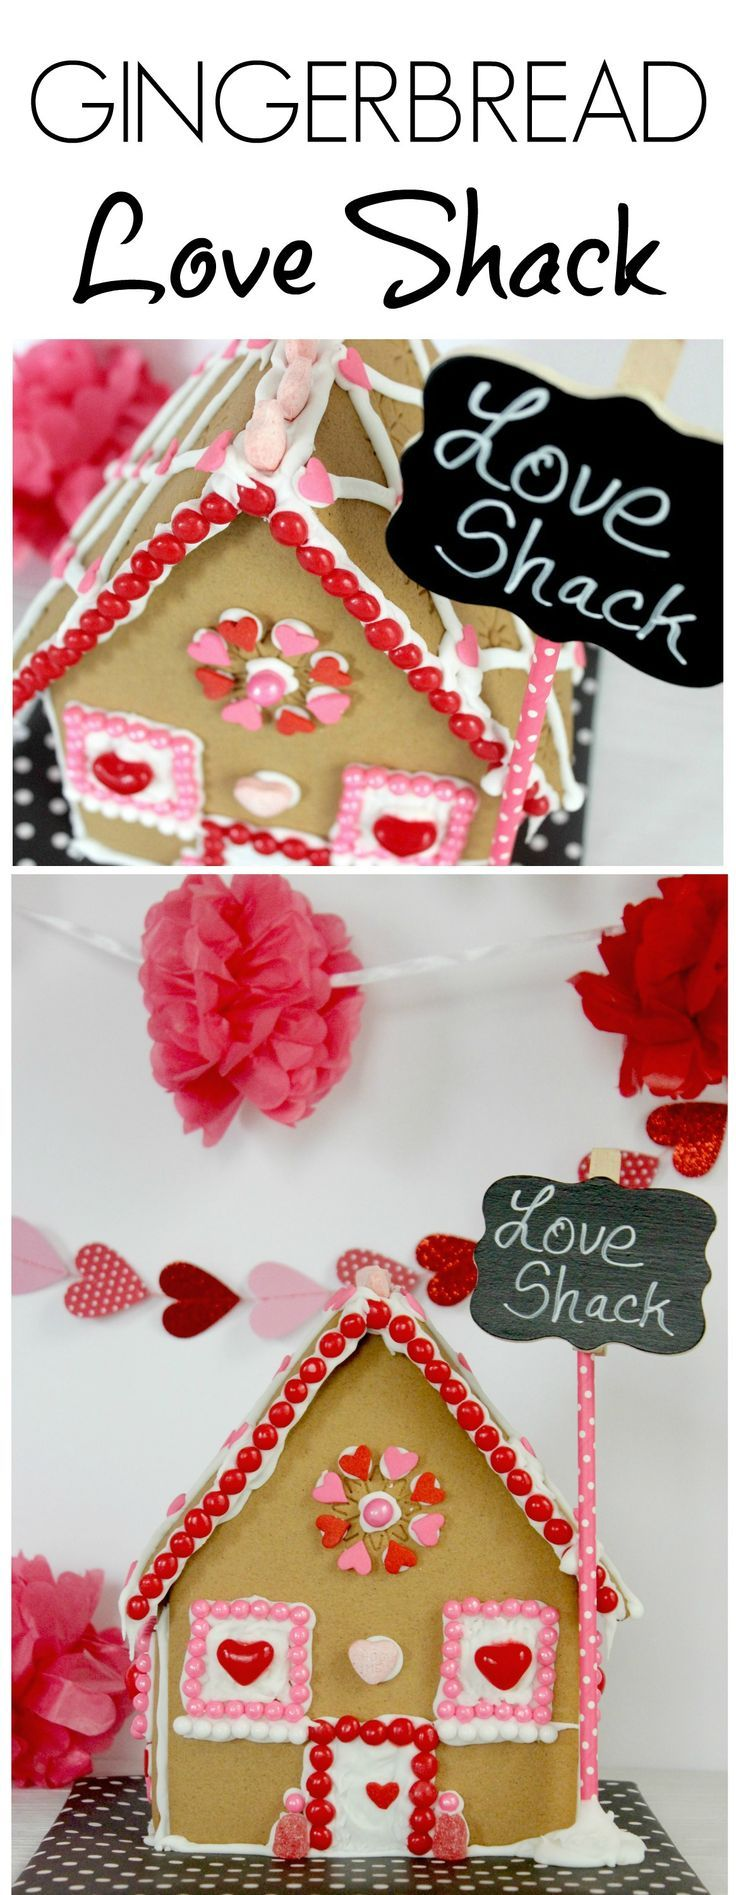 Valentine's Day Gingerbread Love Shack. Cute idea! Save your gingerbread house kit for Valentine's Day!